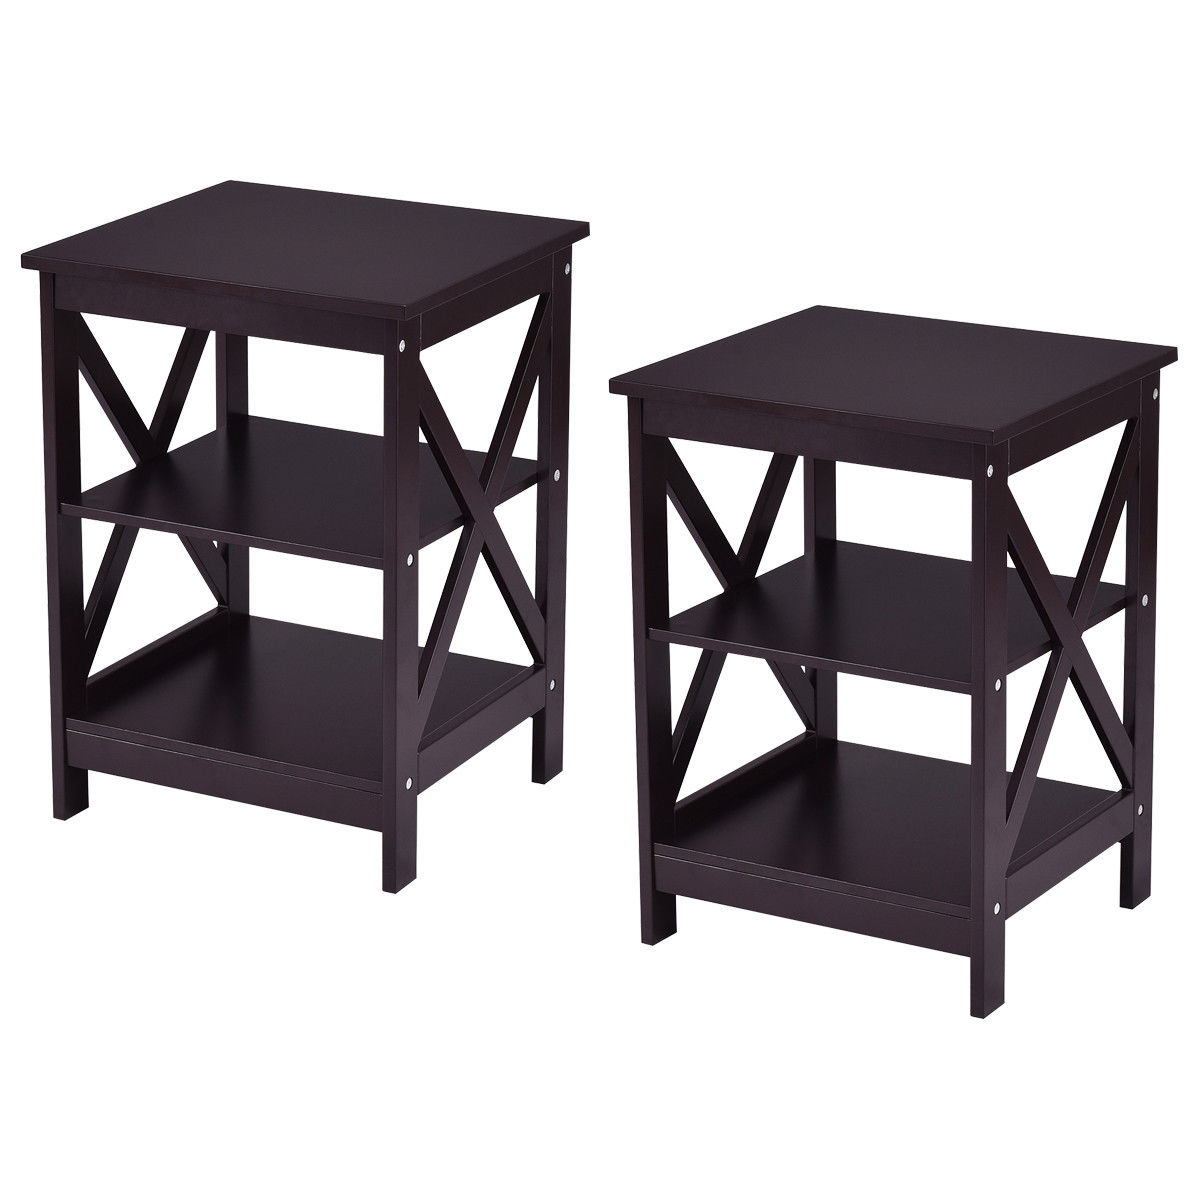 Costway 2PC 3-Tier Nightstand End Table Storage Display Shelf Living Room Furni Espresso